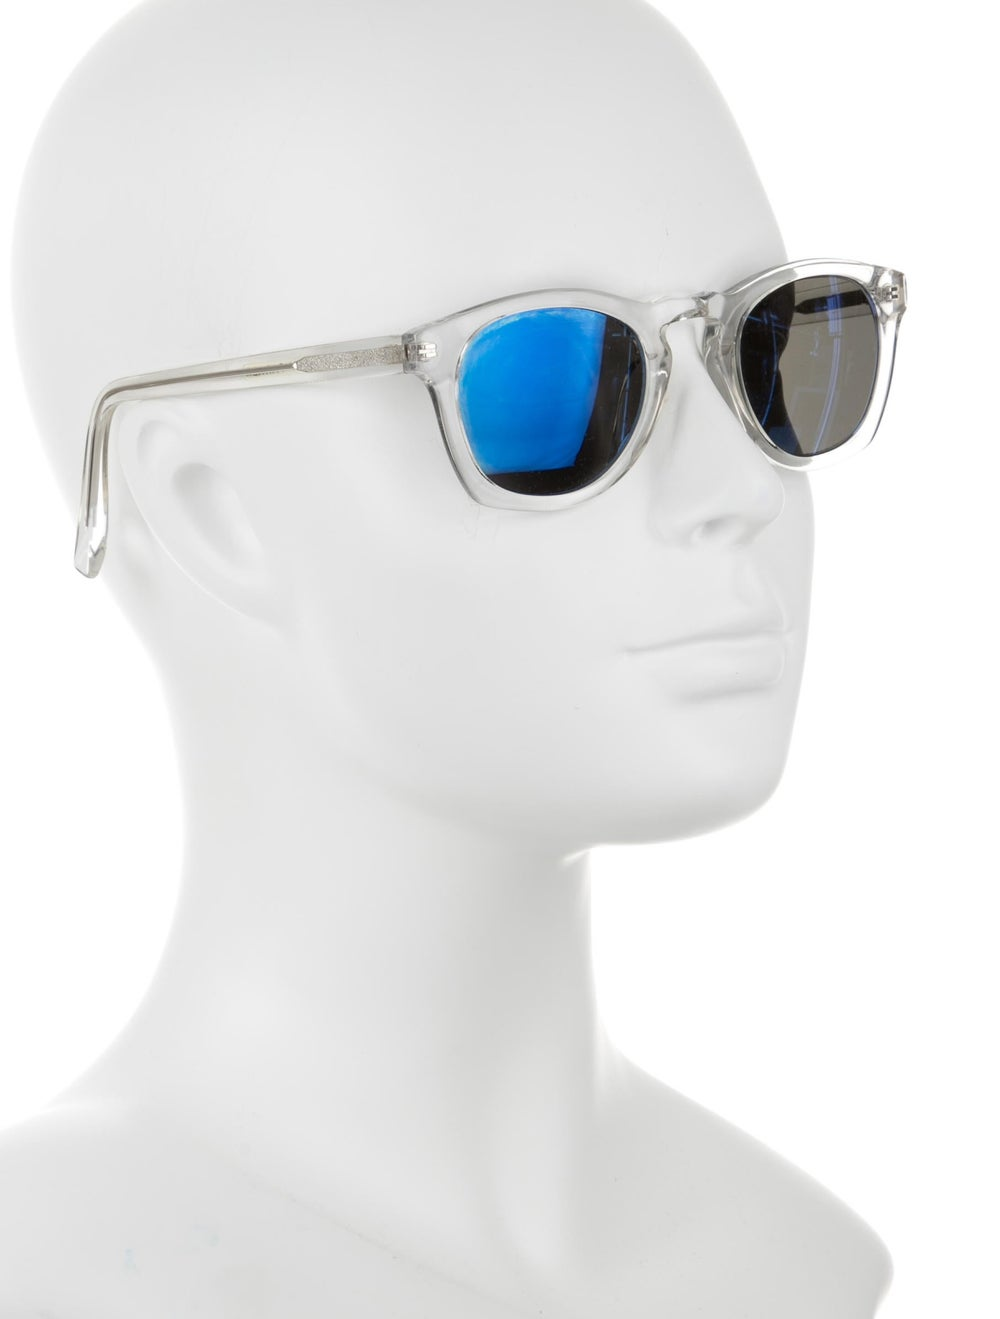 Warby Parker Topper Reflective Sunglasses Clear - image 4